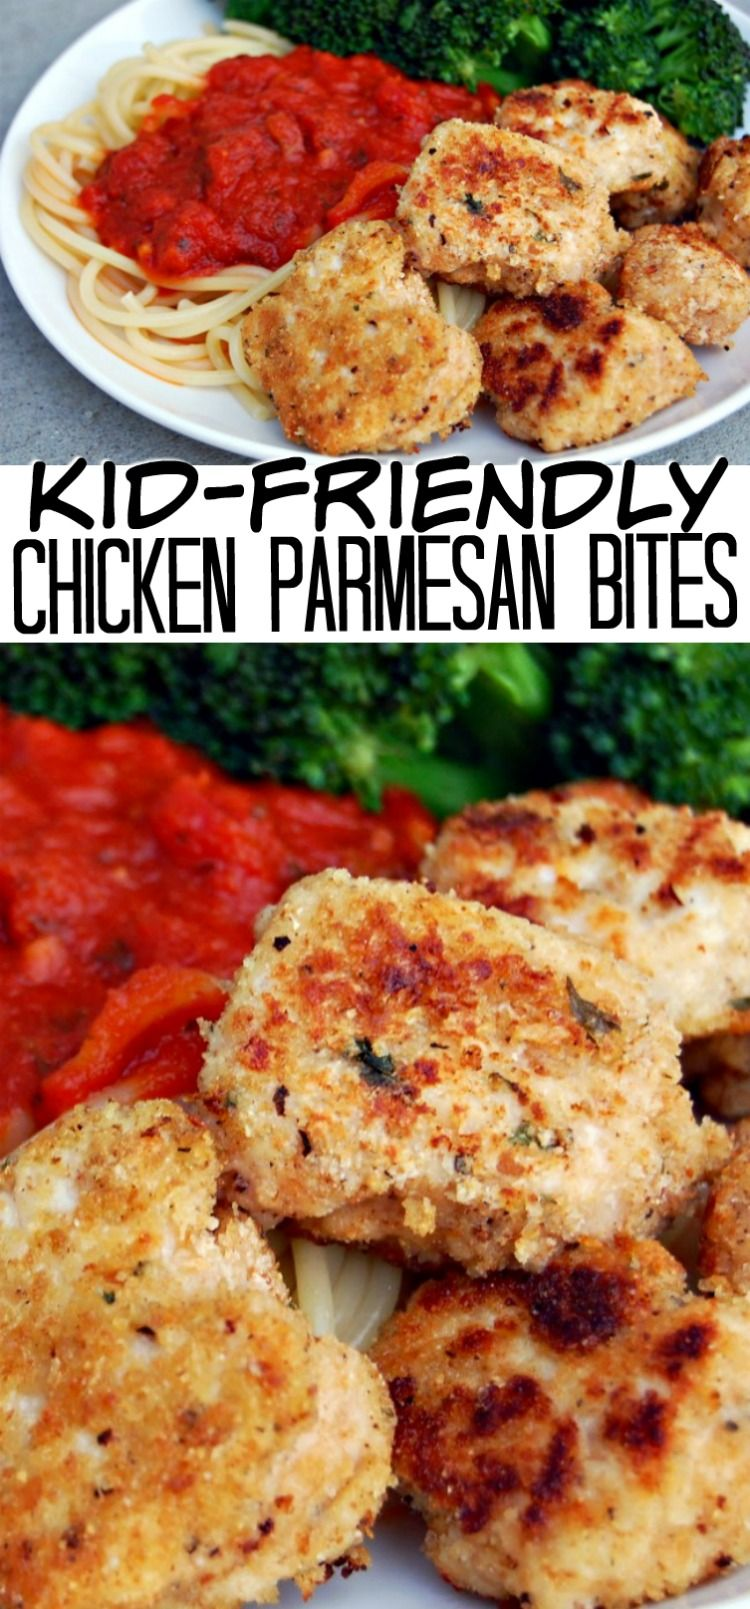 Chicken Parmesan Bites - The Perfect Toddler-Approved Meal